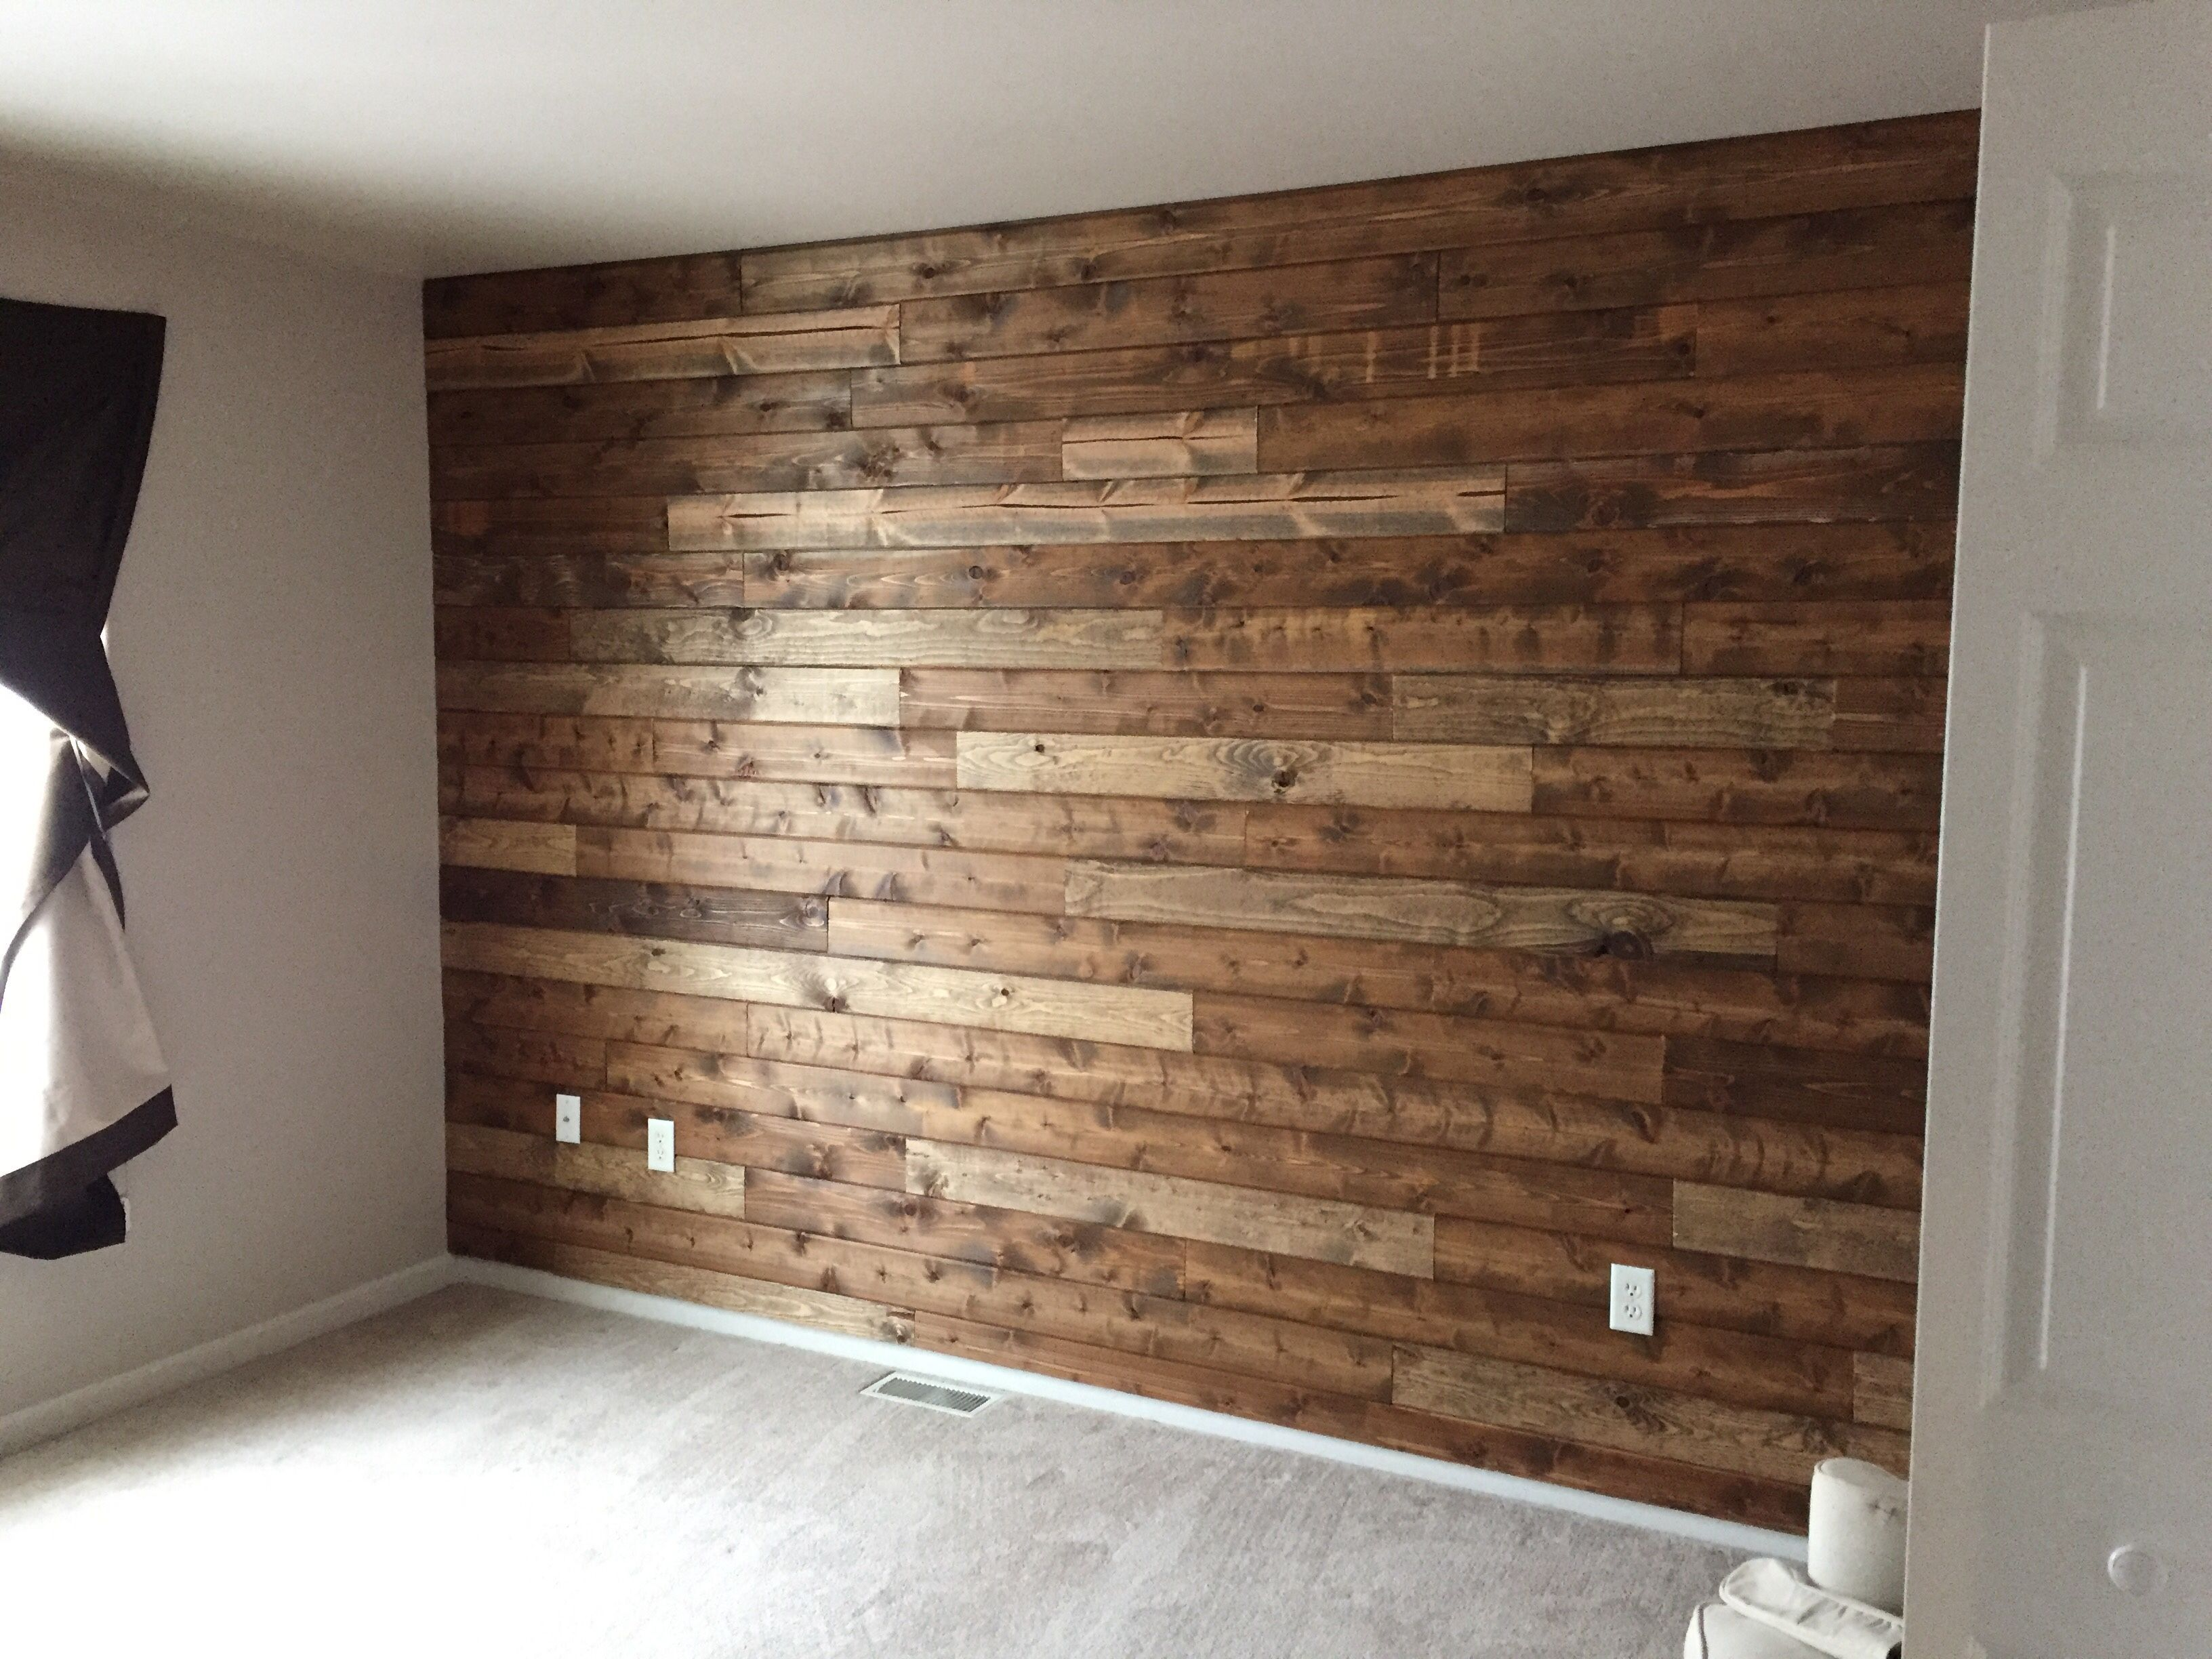 Inspiring Accent Wall Ideas To Change An Area Bedroom Living Room